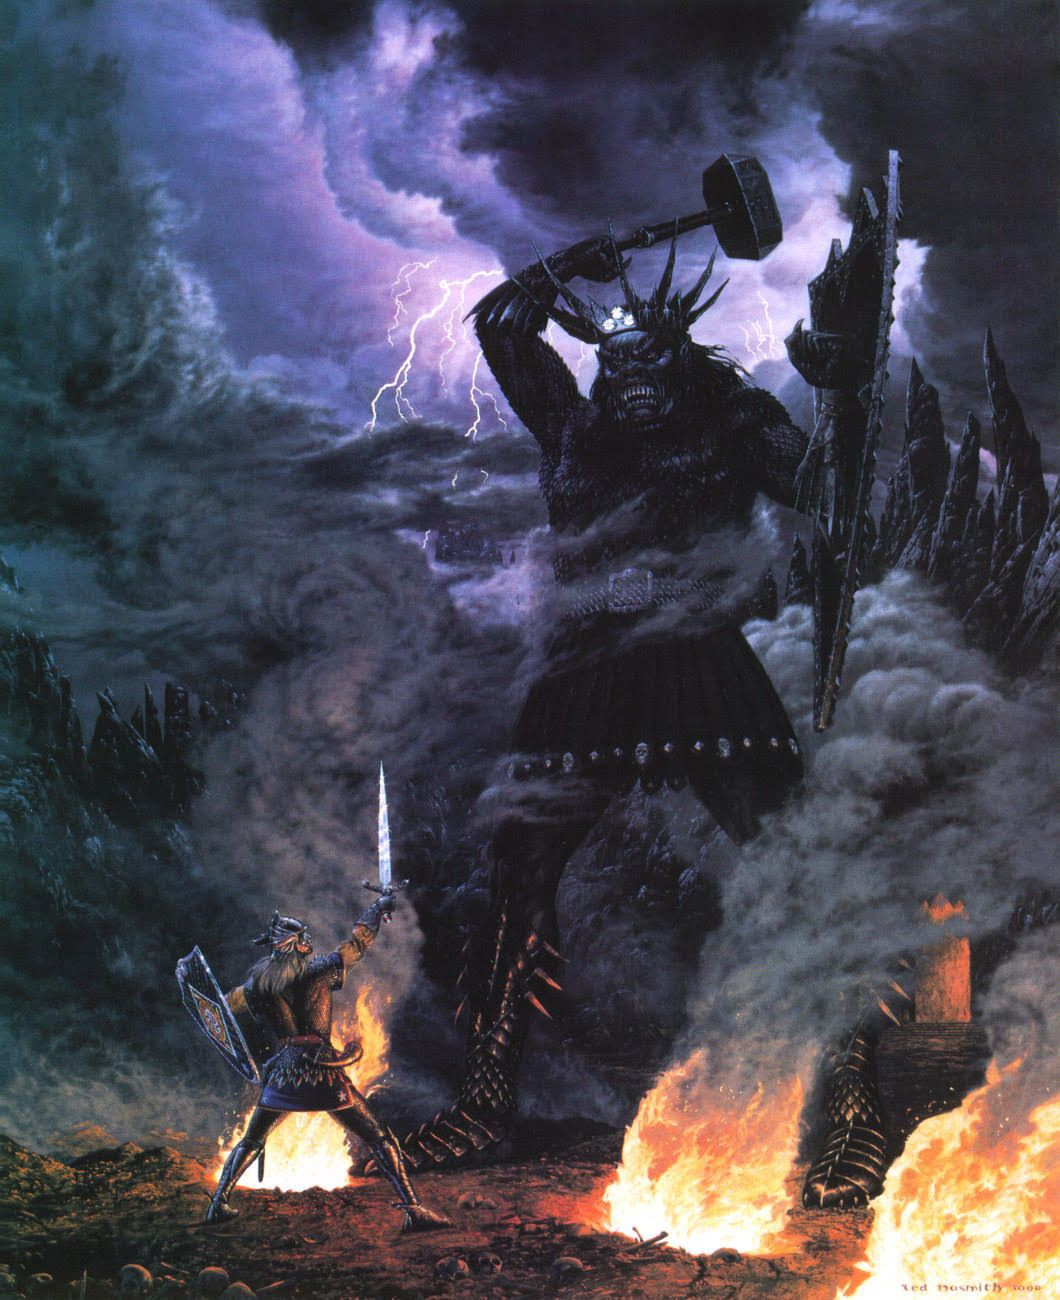 File:Ted Nasmith - Morgoth and the High King of Noldor (1992).jpg